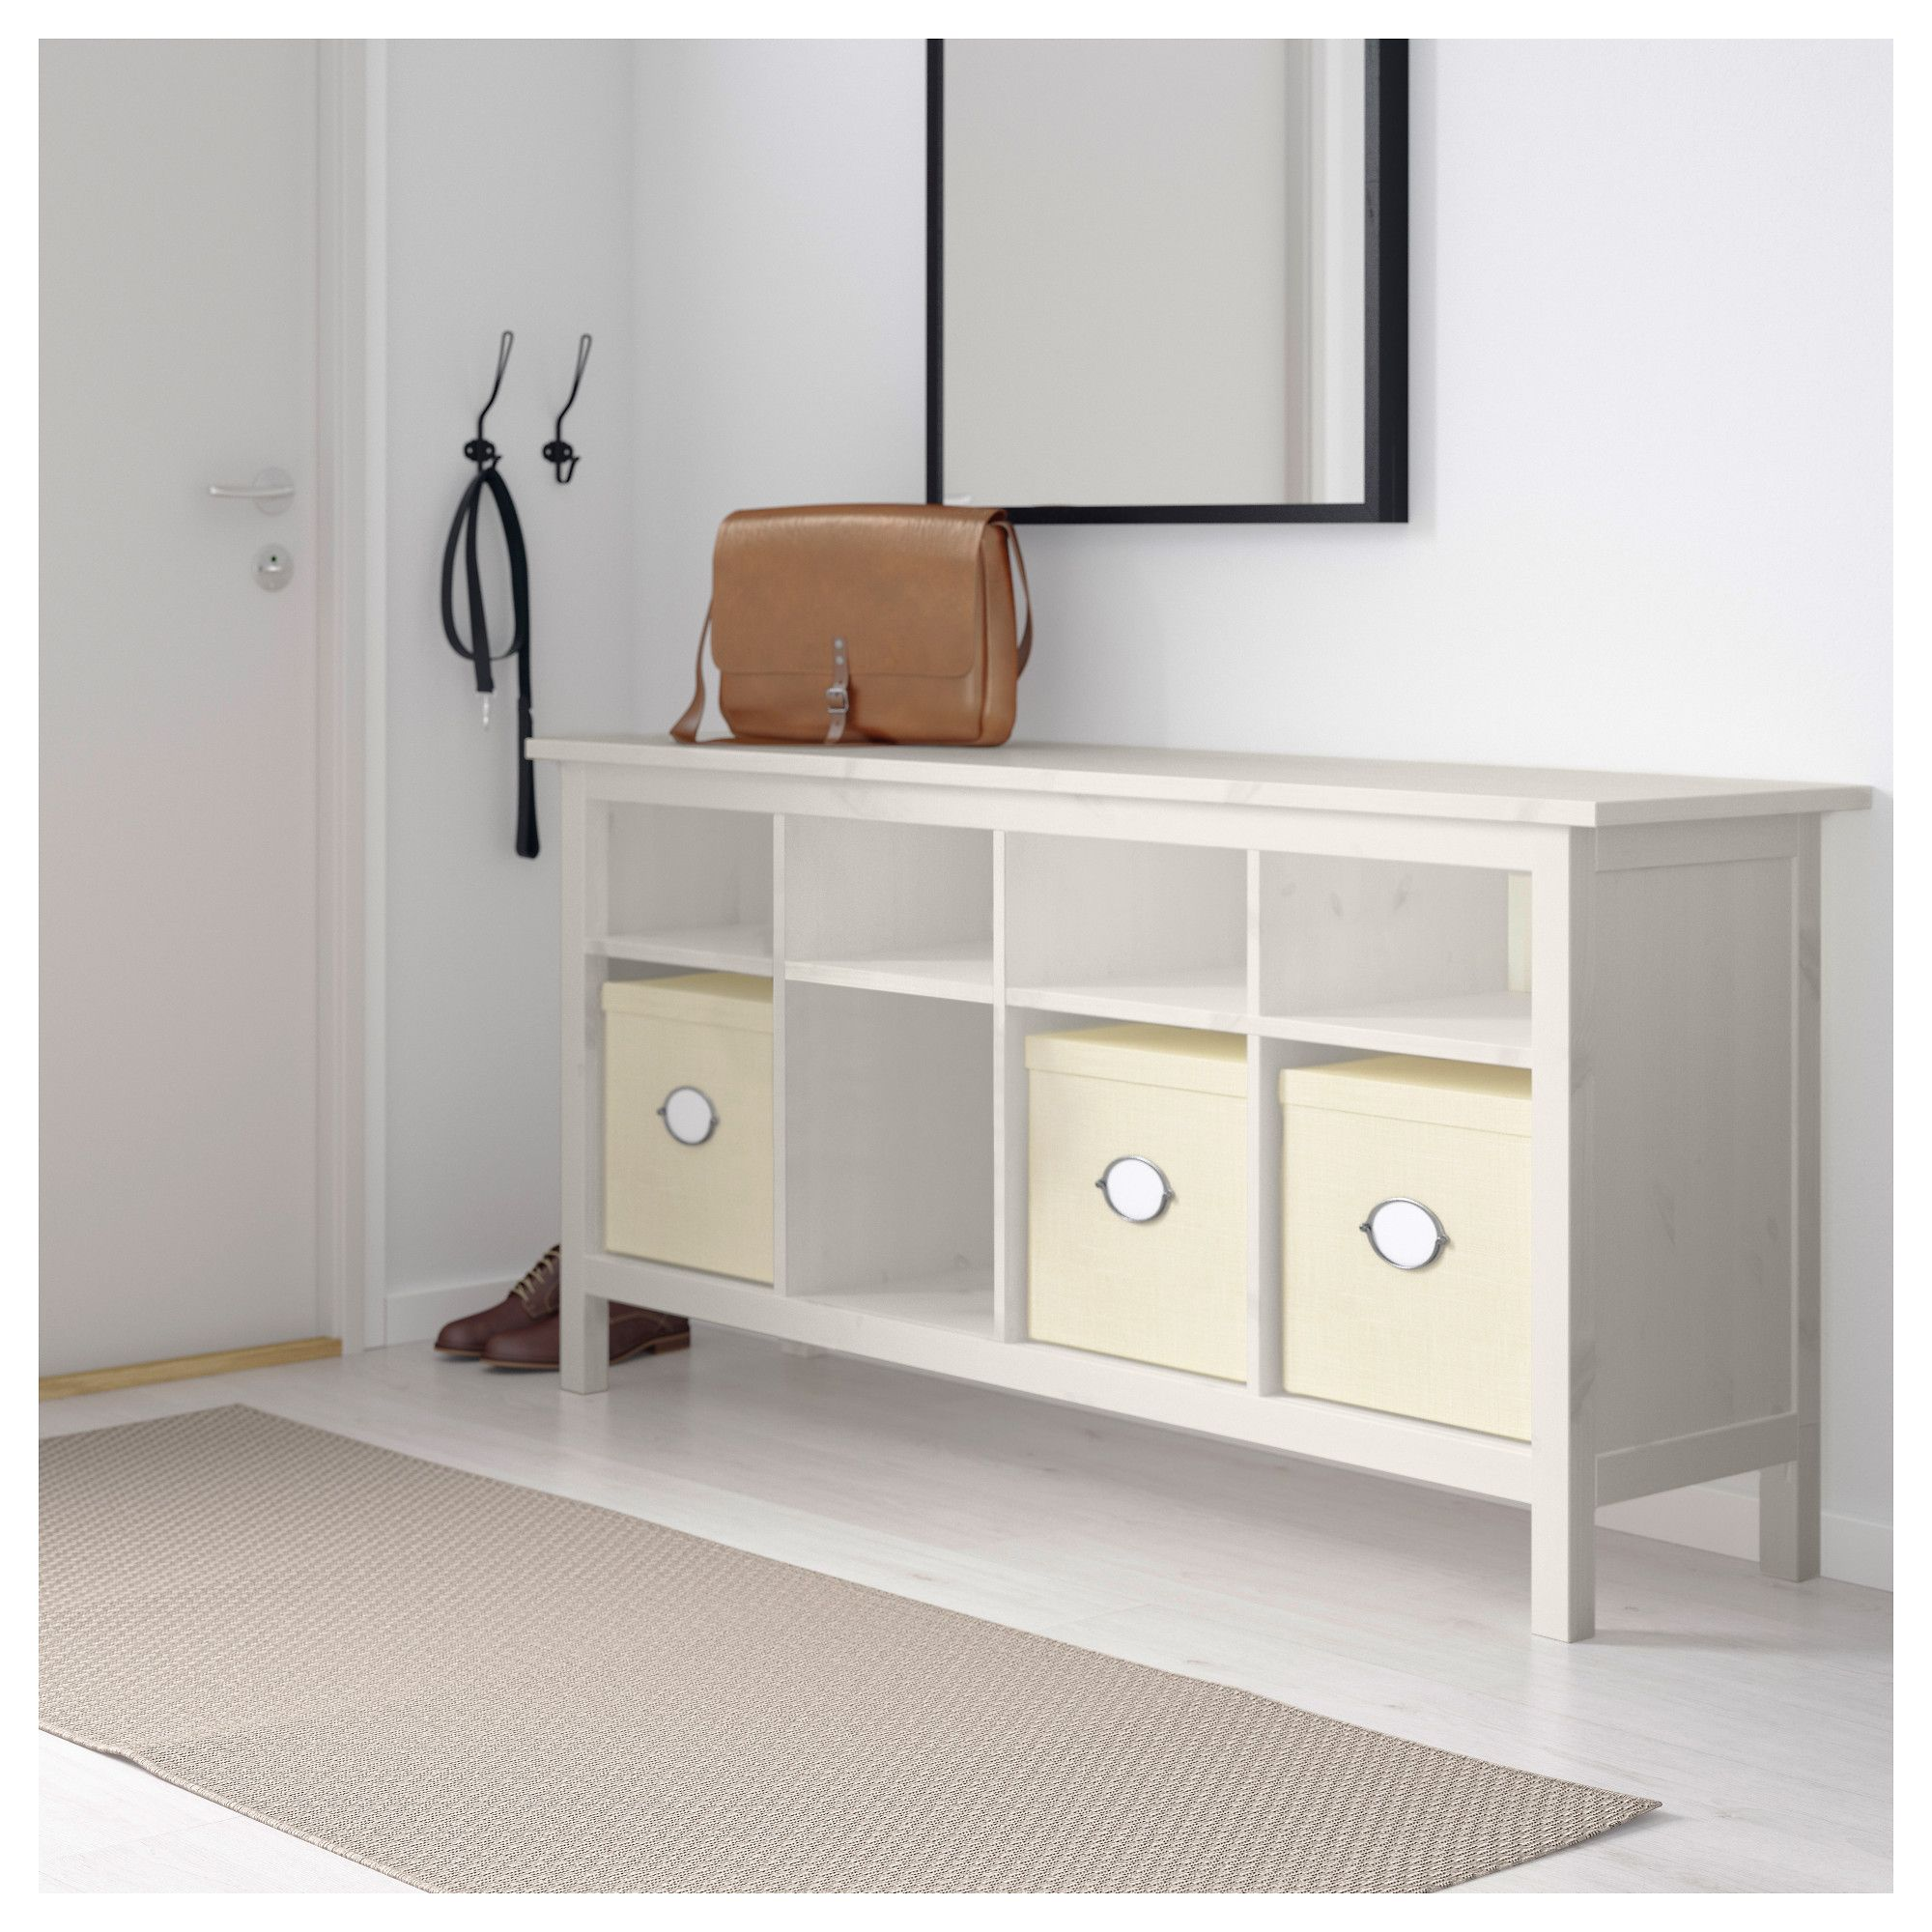 Ikea Hemnes Console Table White Stain Hemnes Ikea Console Table Ikea